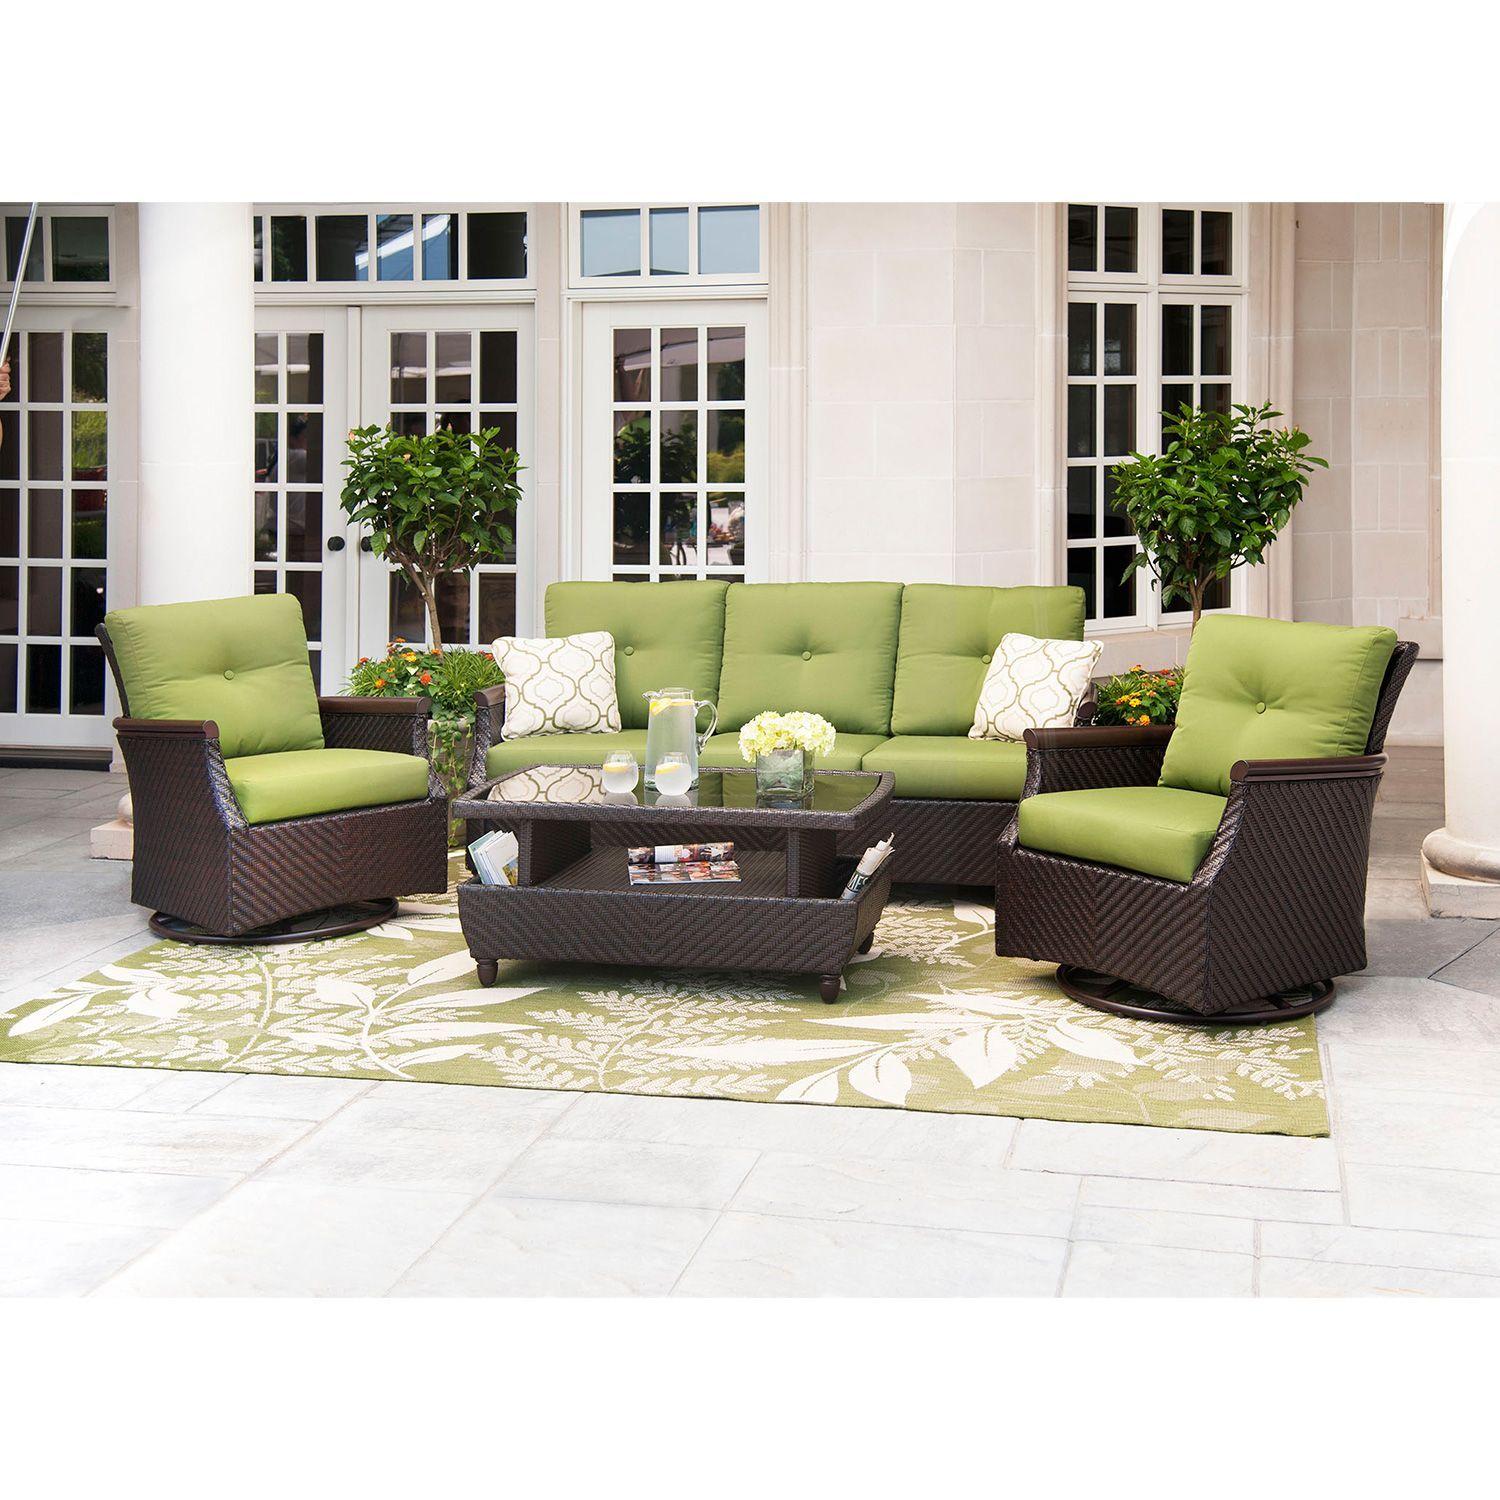 Member s Mark Carnaby Deep Seating Set with Premium Sunbrella